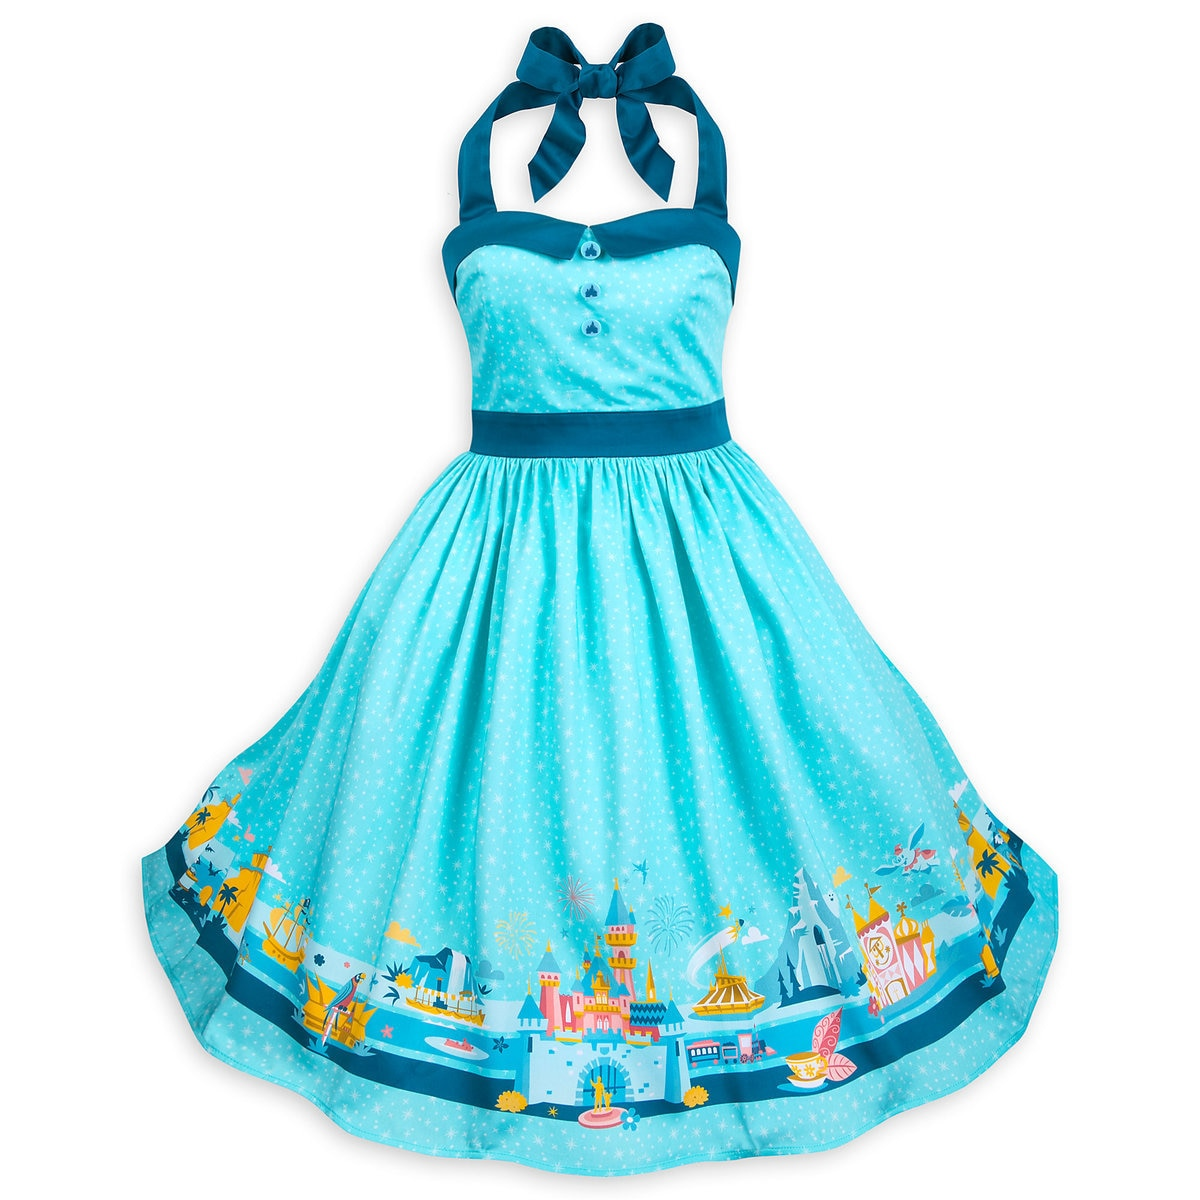 Disneyland dress from ShopDisney